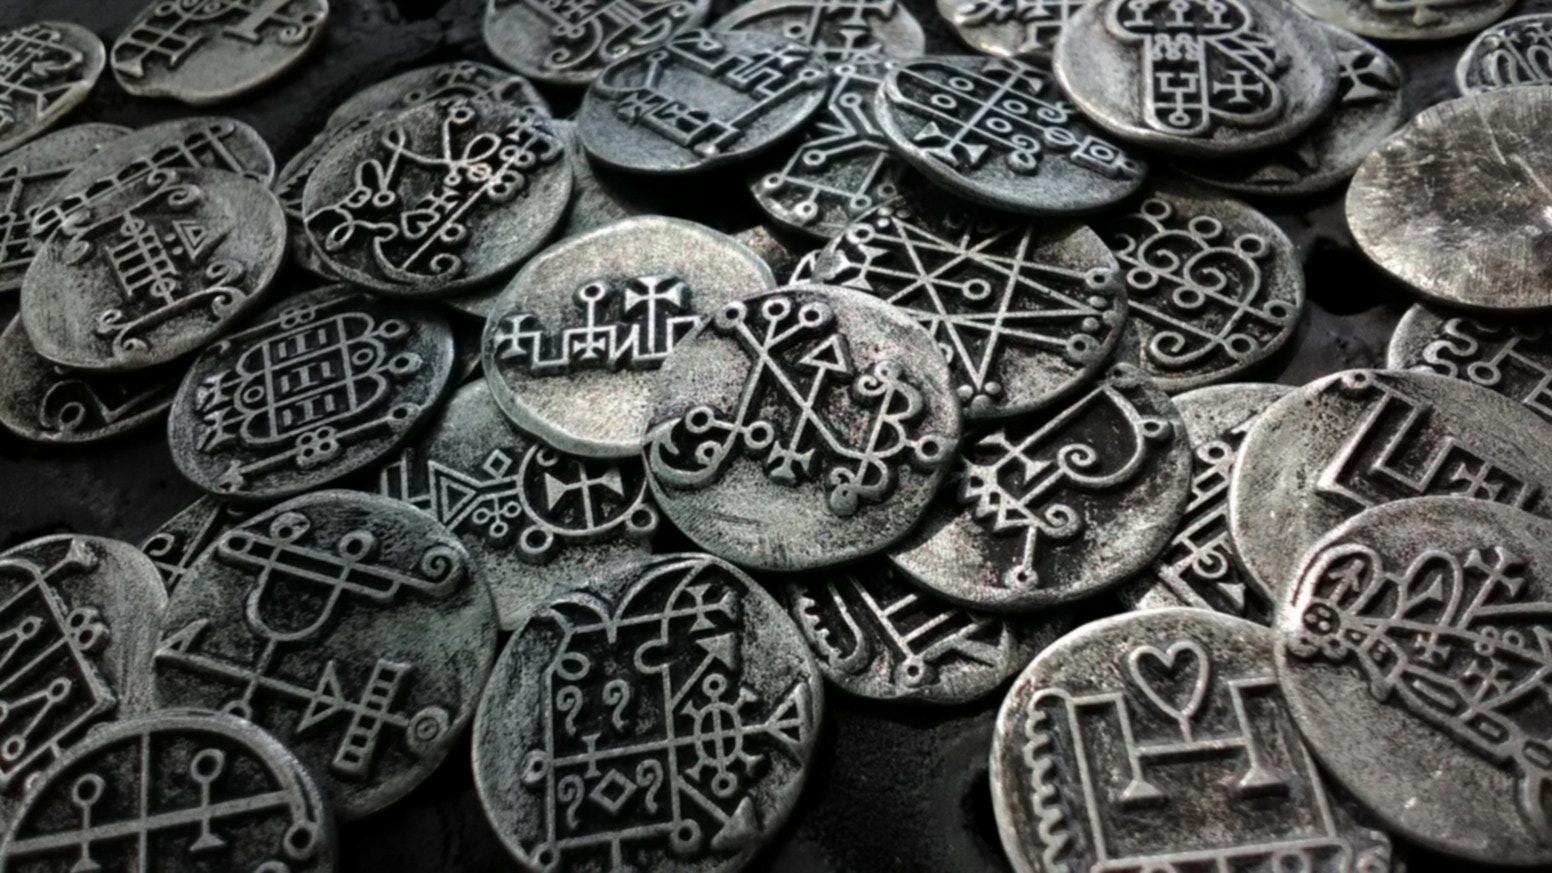 Complete set of Lesser Key of Solomon coins  --  All 80  Demon seals  of the Ars Goetia  --  Demonology sigil tokens  -- solid metal